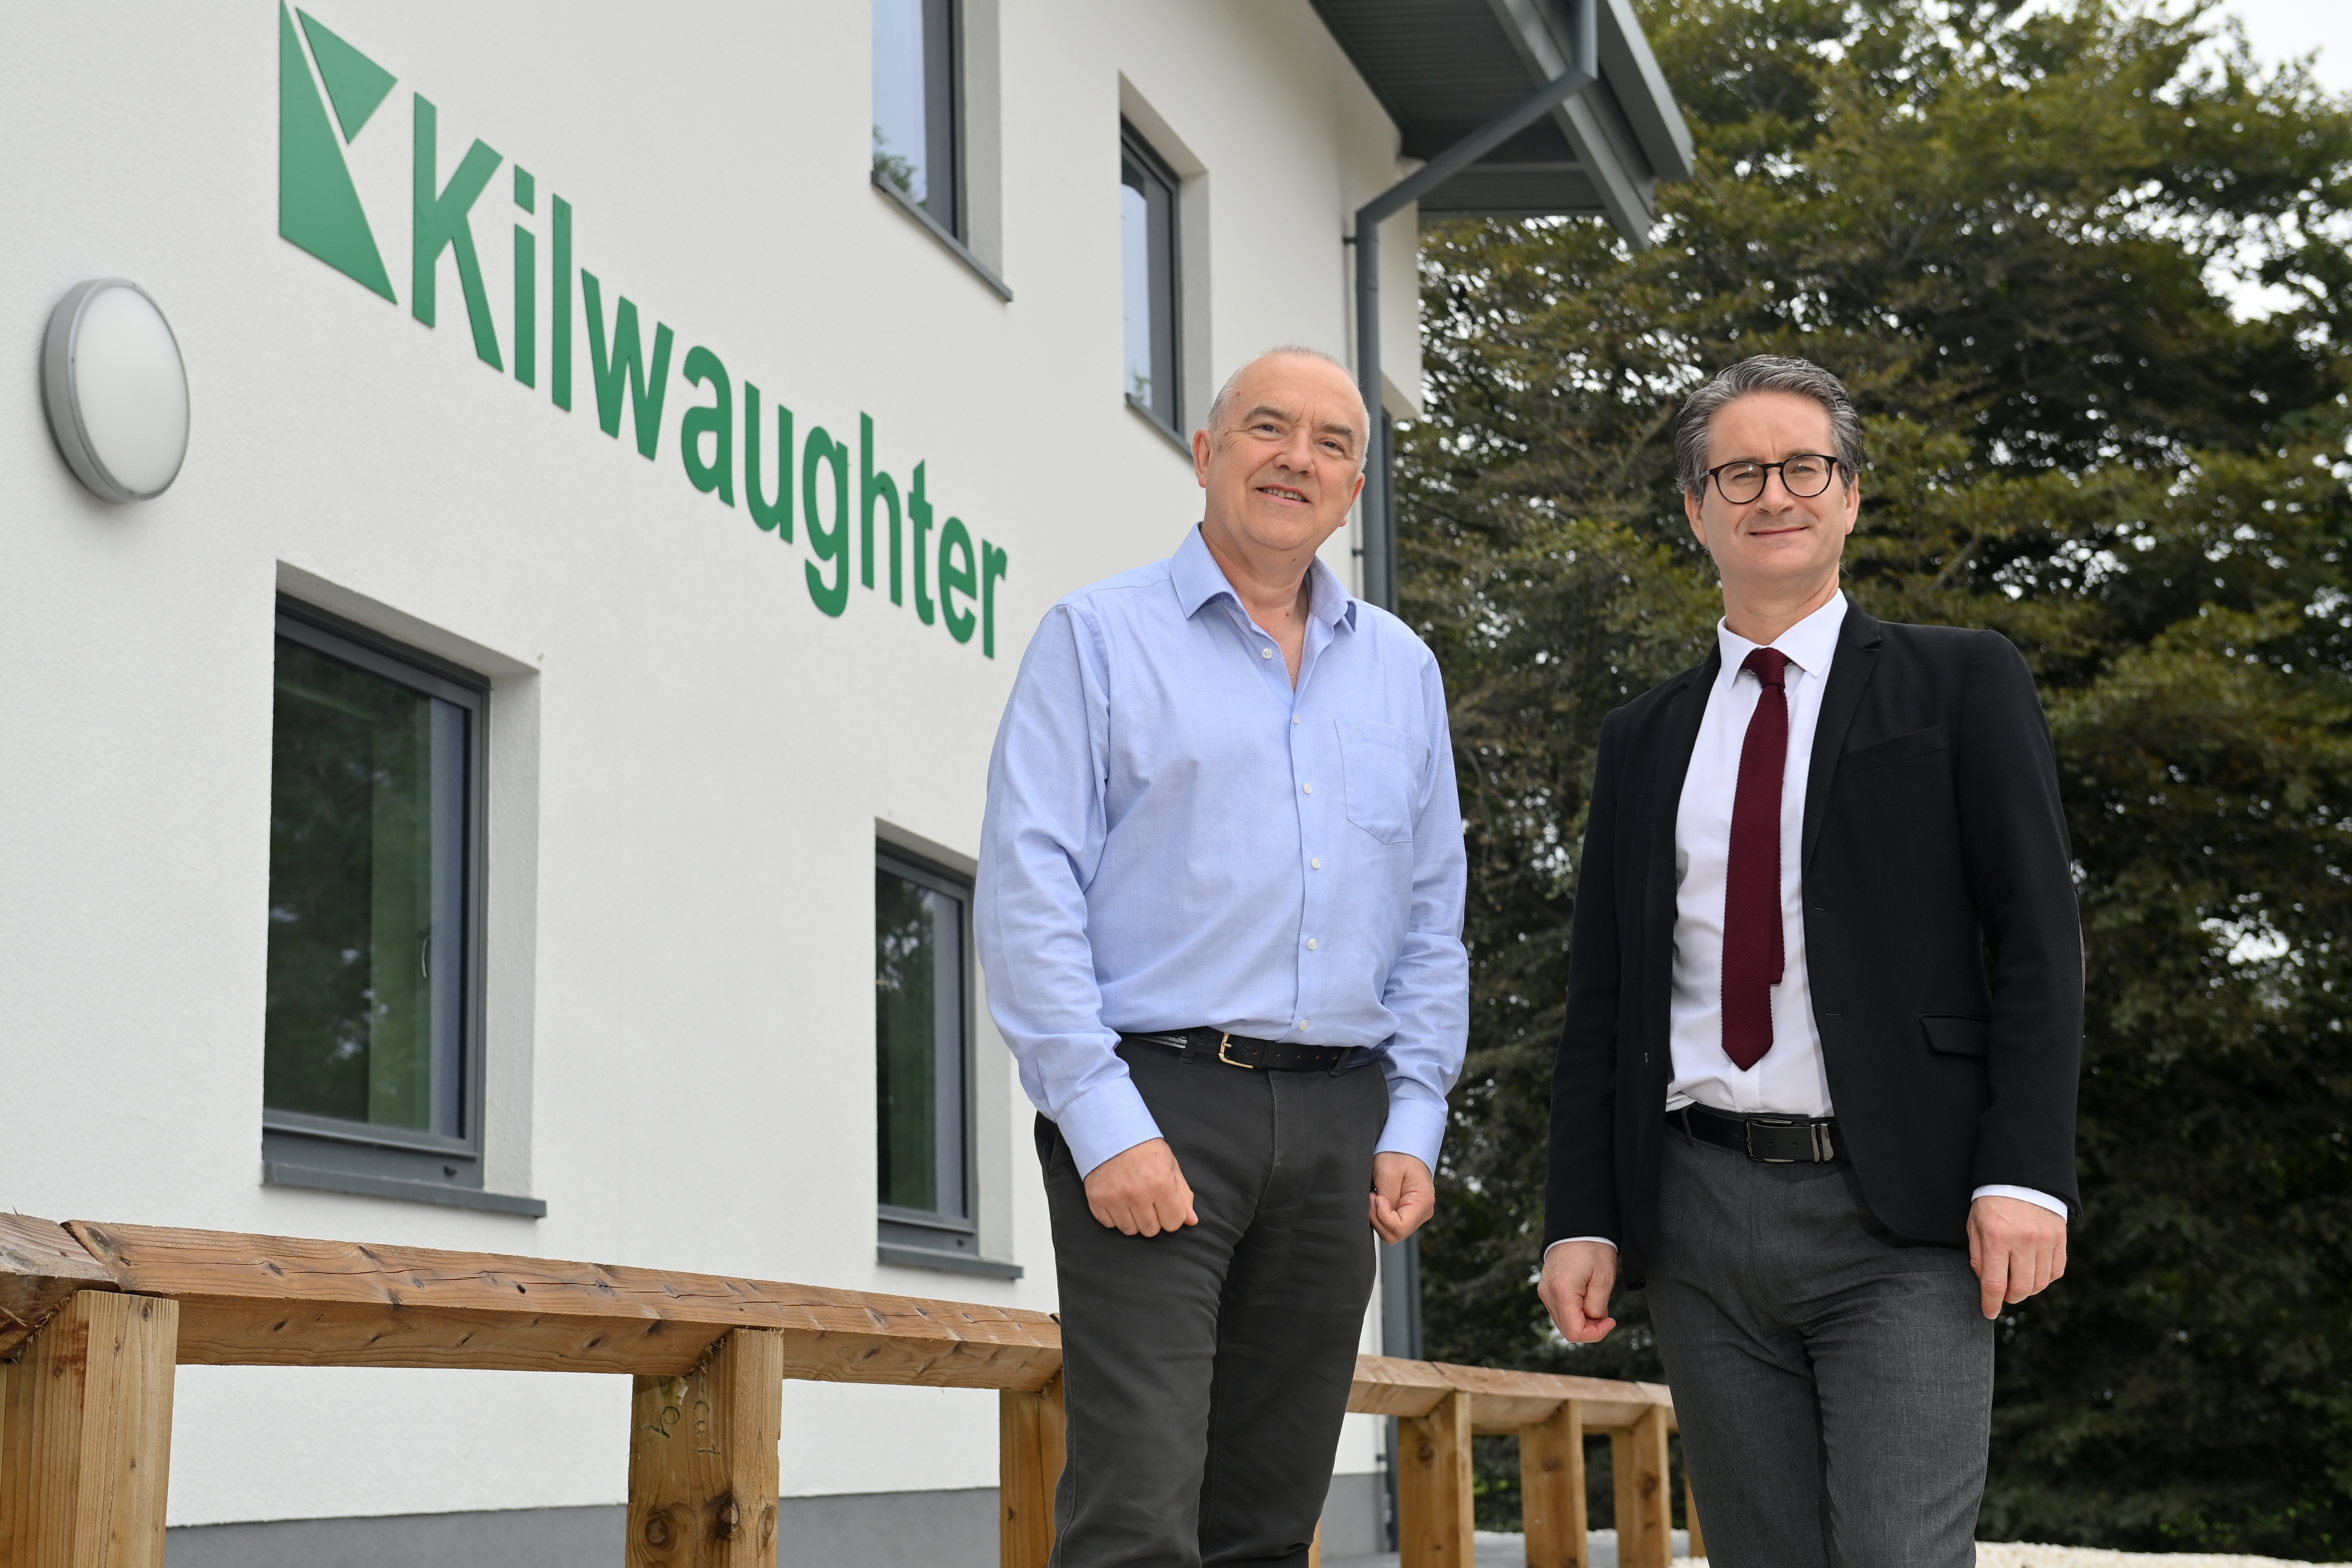 Kilwaughter Invests in R&D